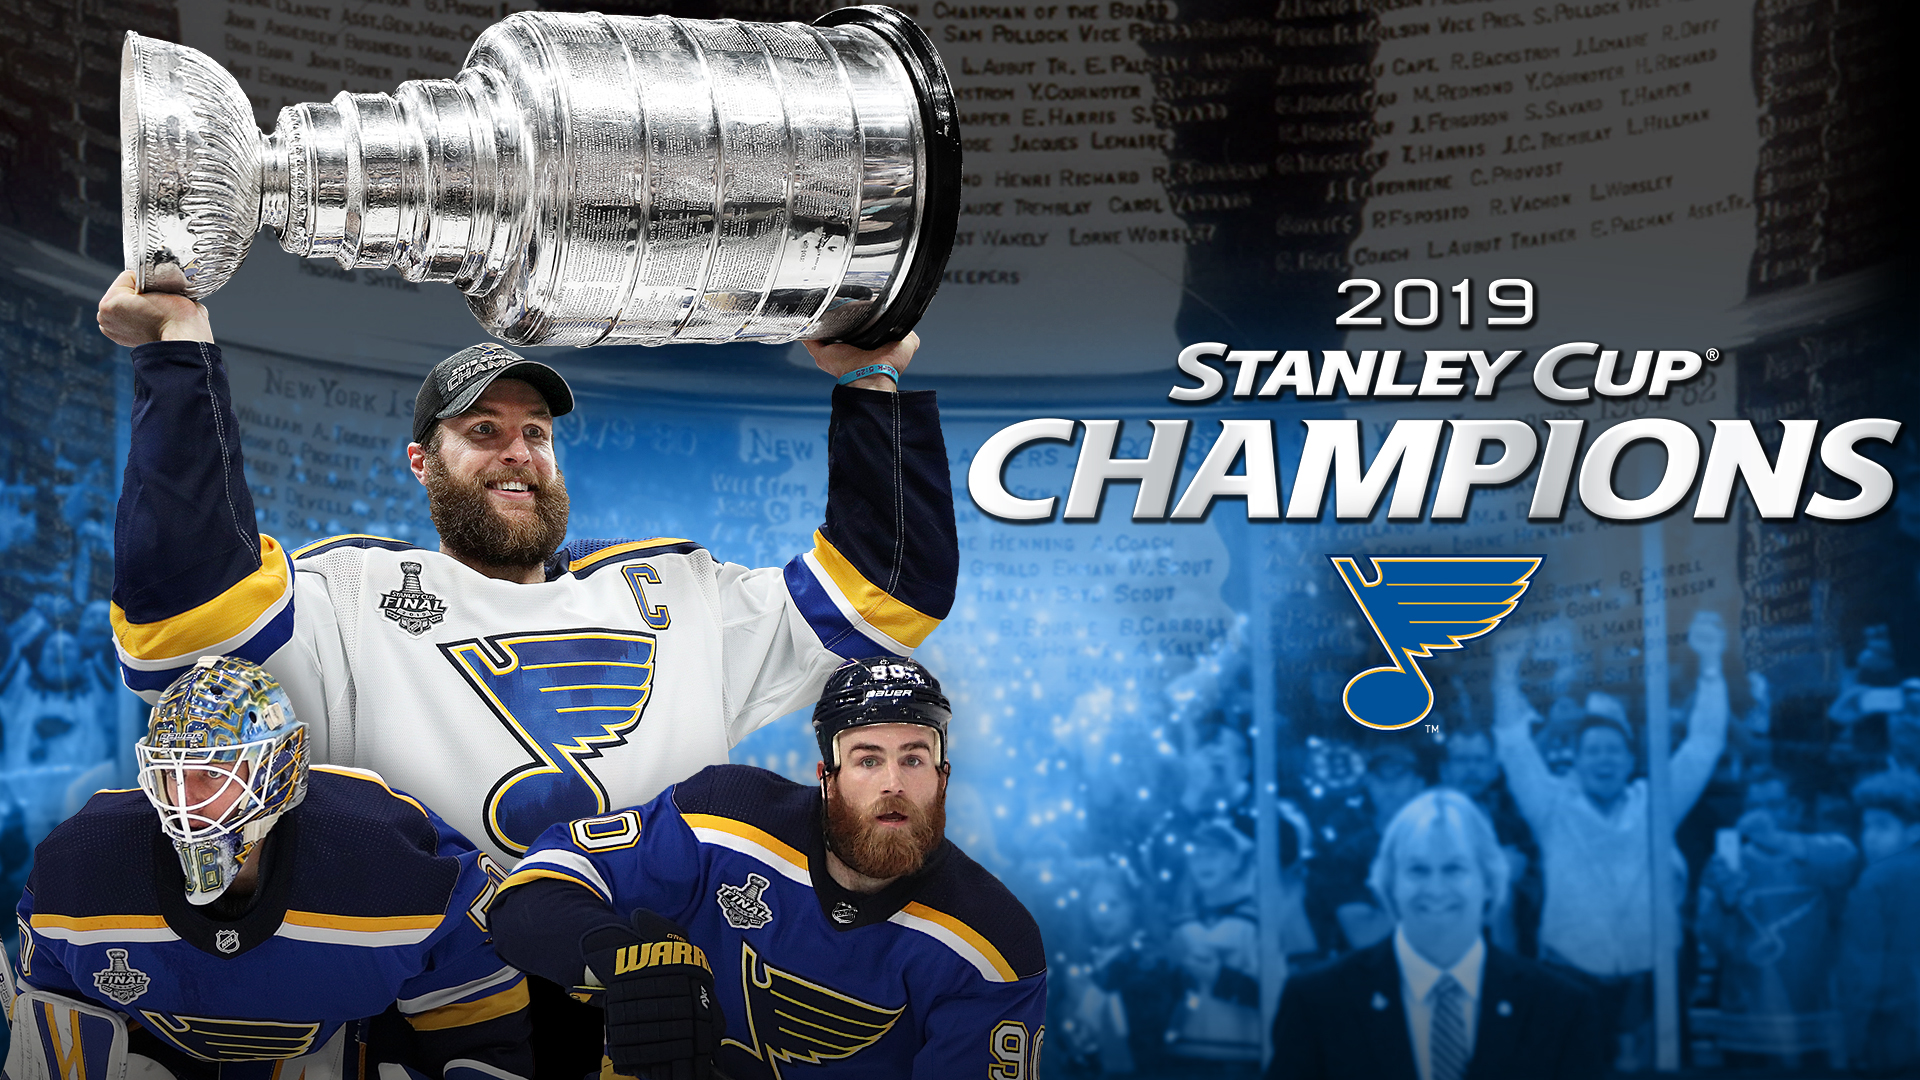 St. Louis Blues: 2019 Stanley Cup Champions